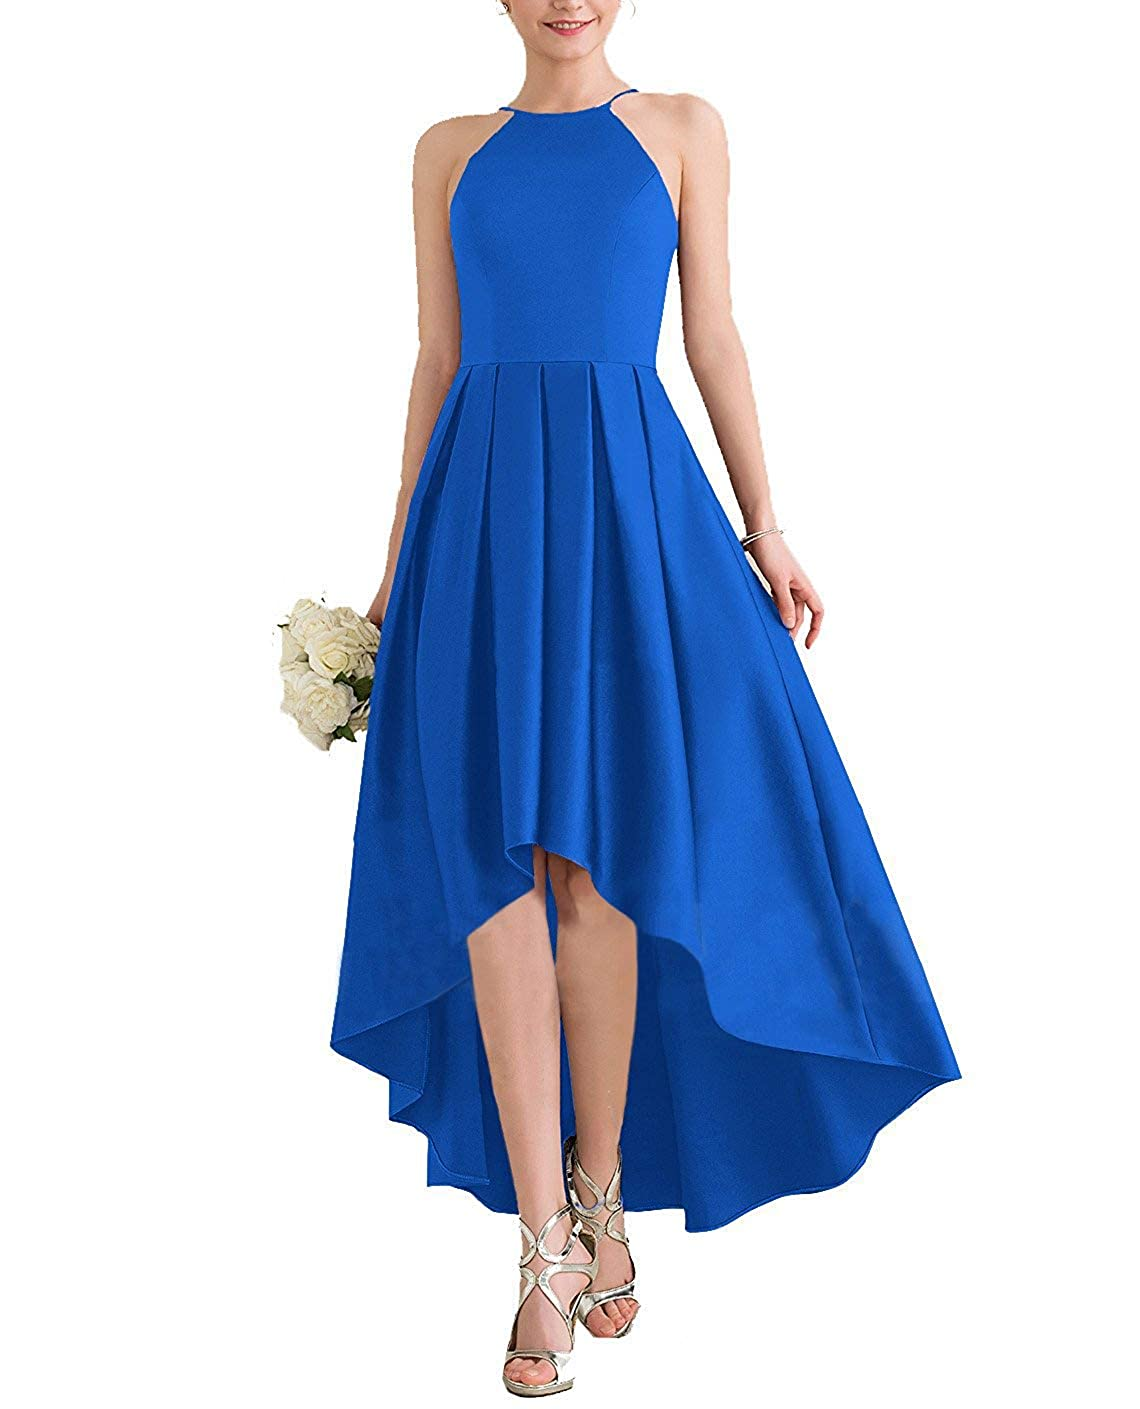 bluee JINGDRESS Womens High Low Satin Bridesmaid Dress High Neck Sleeveless A Line Pleated Prom Gowns